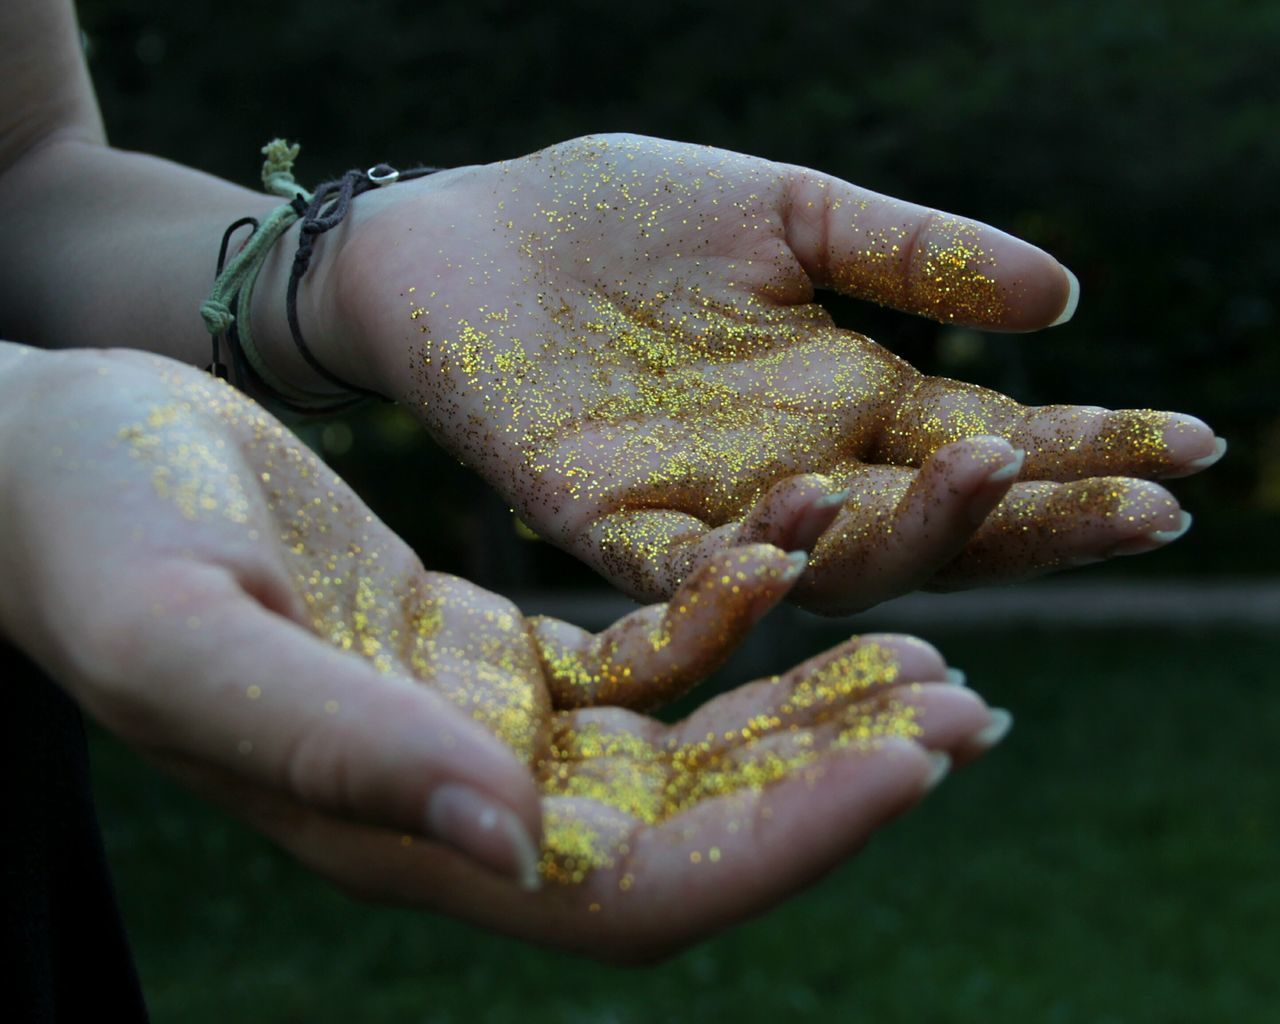 Cropped image of woman with glitter on hands